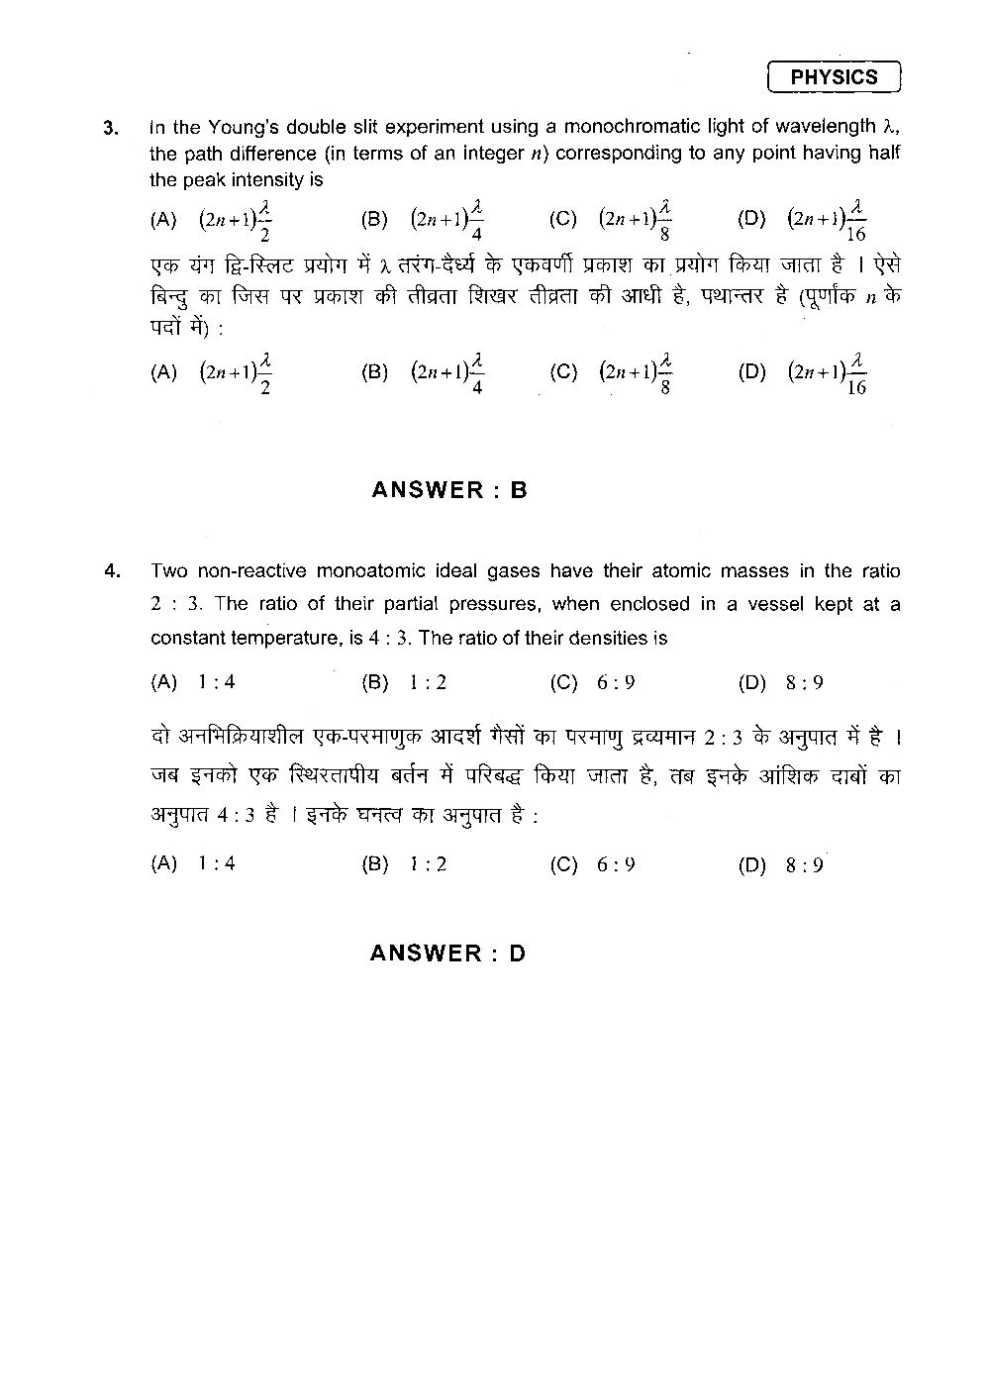 Iit study material pdf